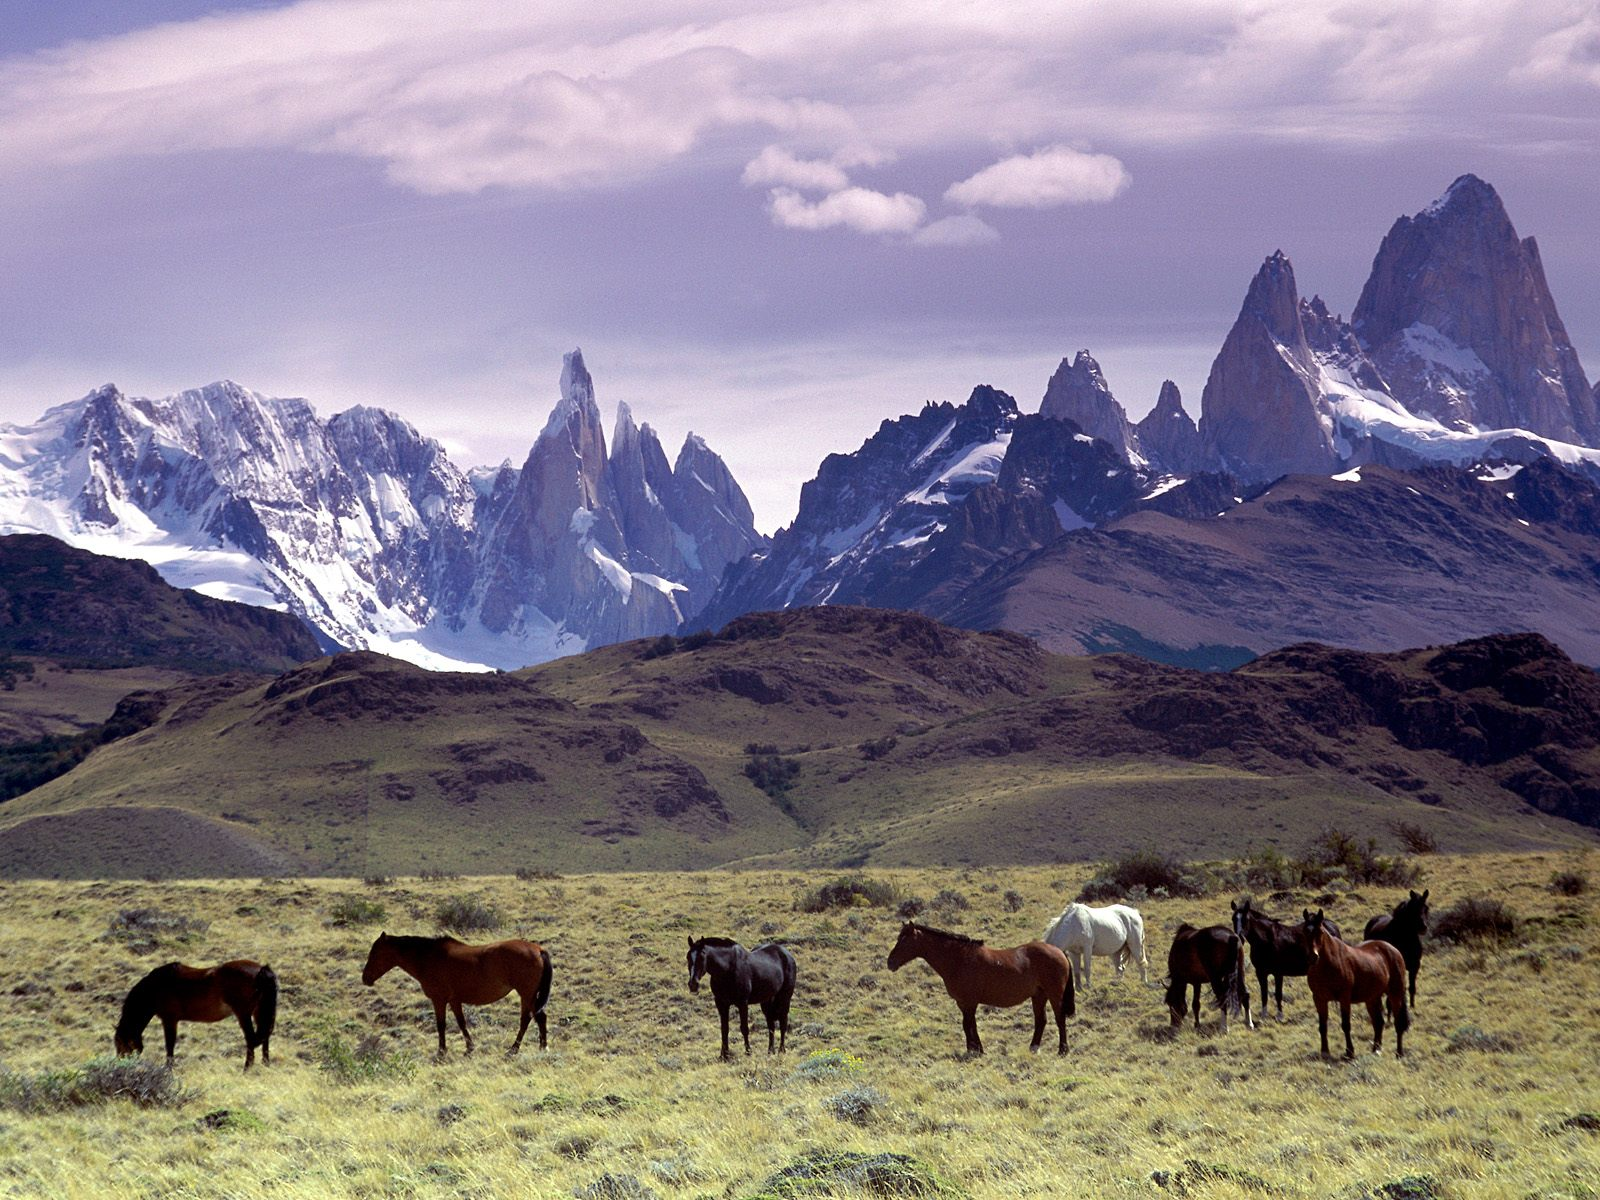 http://4.bp.blogspot.com/-c6Rz4rXgt1g/TVxK2y7LrrI/AAAAAAAACt4/LEqGgBz-mU4/s1600/the-wild-sprit-andes-mountains-argentina-group-of-horses-pictures-wallpapers.jpg